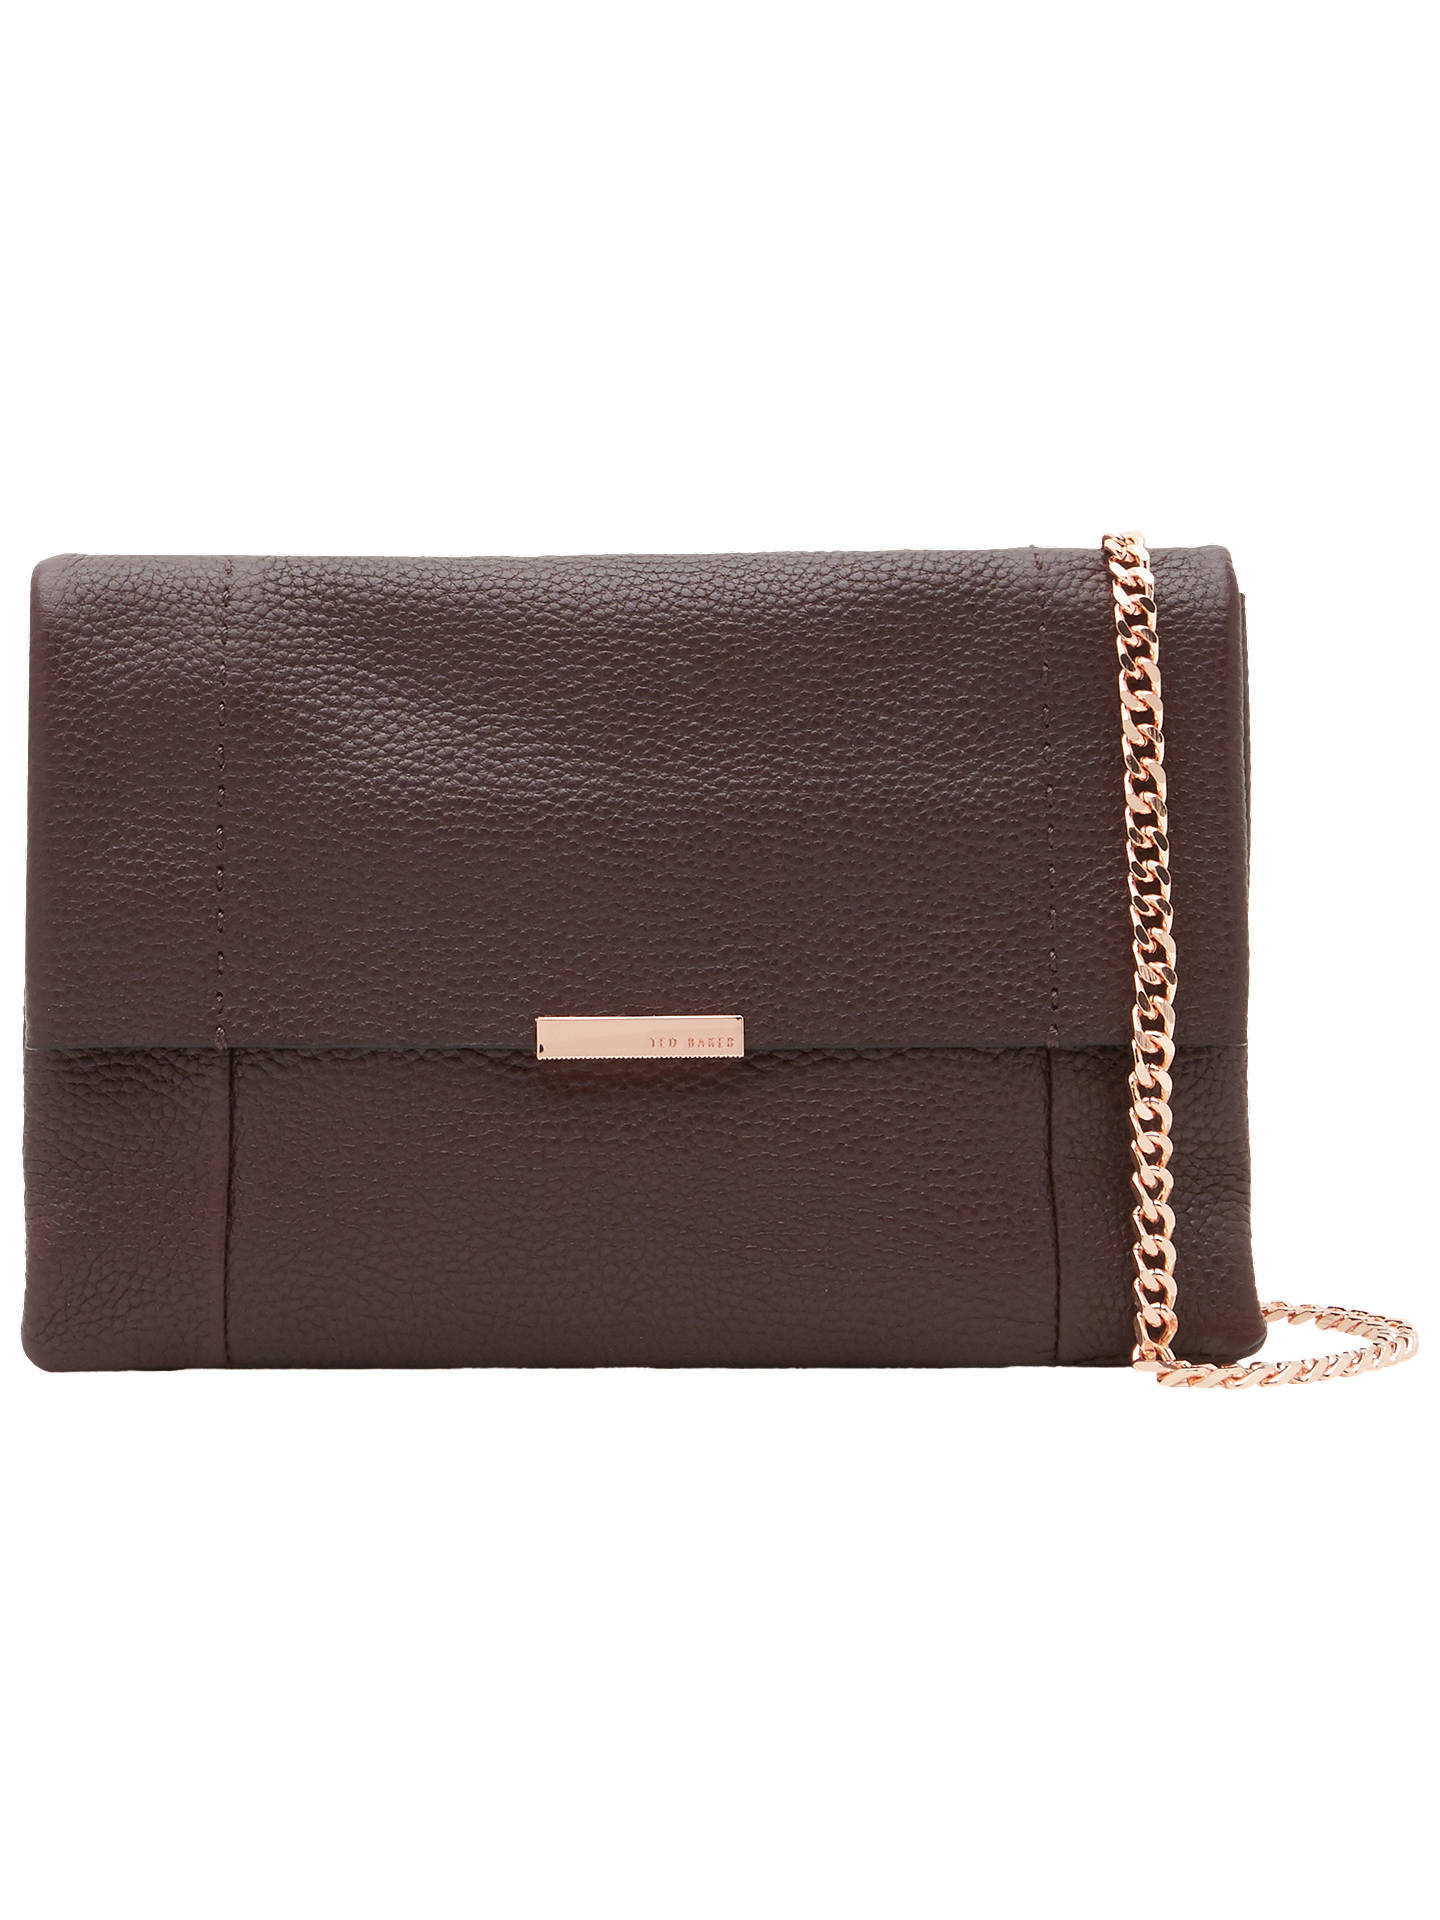 2369671ce8690 Ted Baker Parson Leather Cross Body Bag at John Lewis   Partners